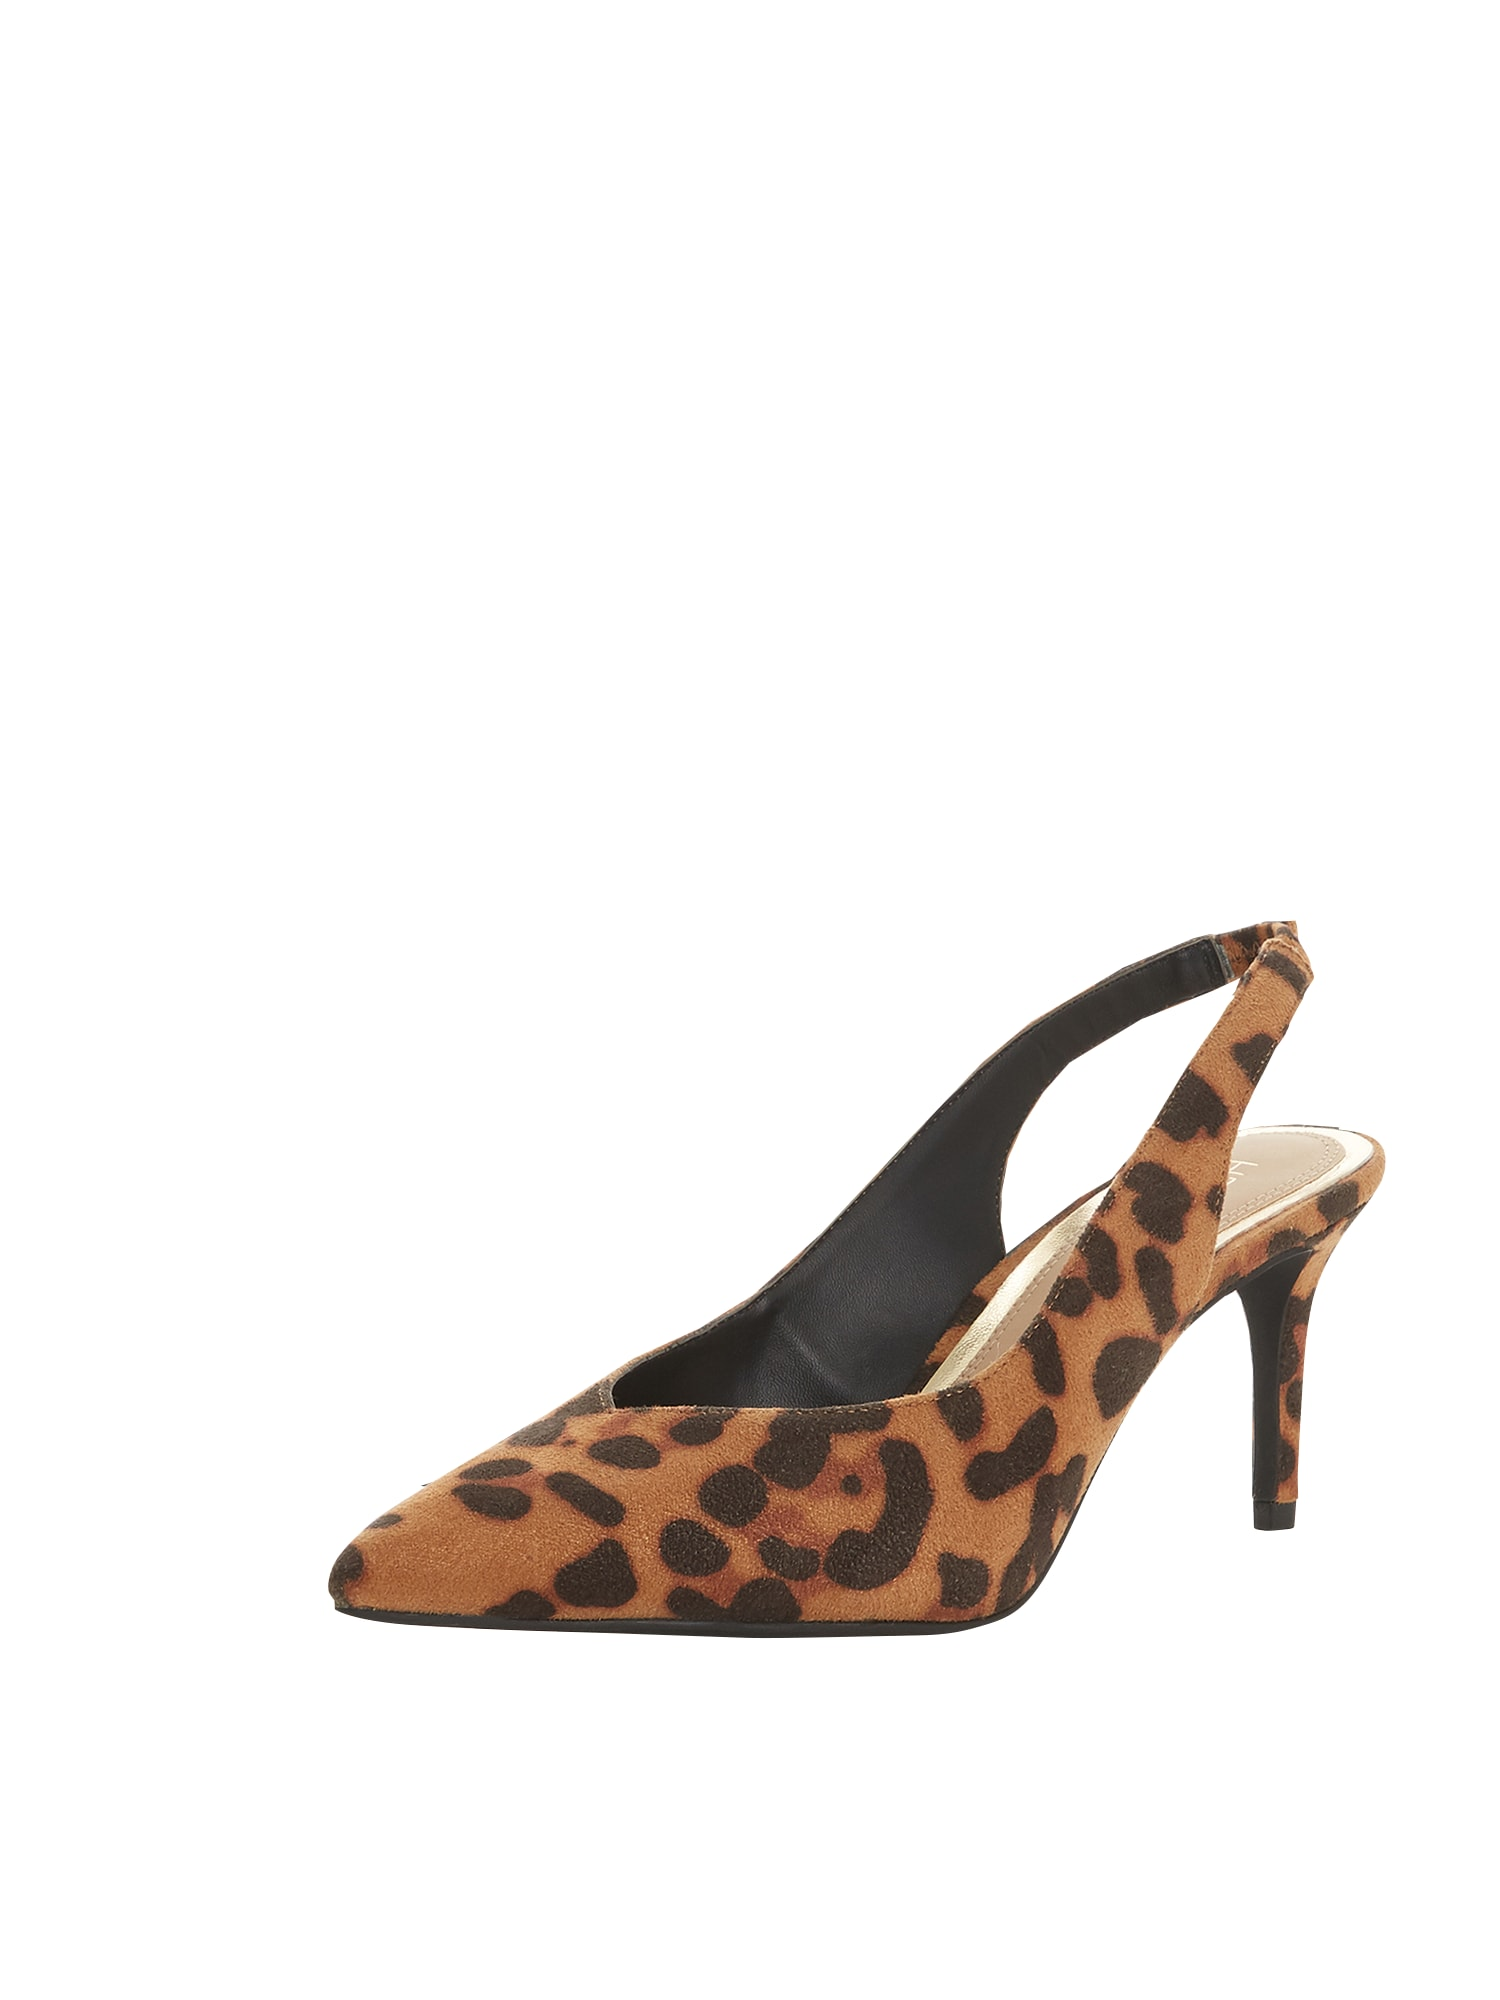 Pumps 'CHARLIES' | Schuhe > Pumps > Klassische Pumps | Braun - Schwarz | Head Over Heels